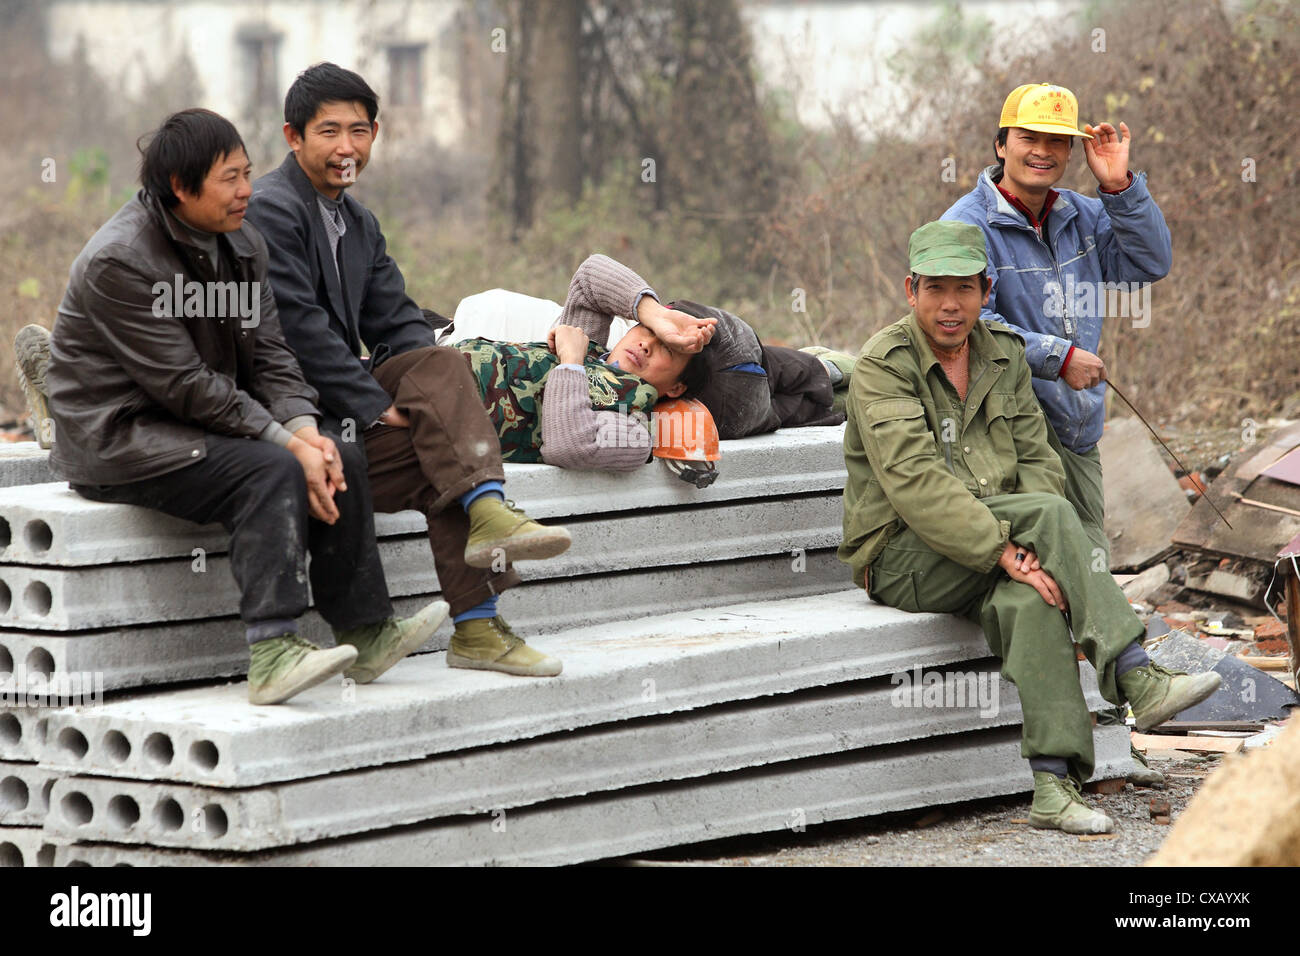 Suzhou, construction workers take a break - Stock Image